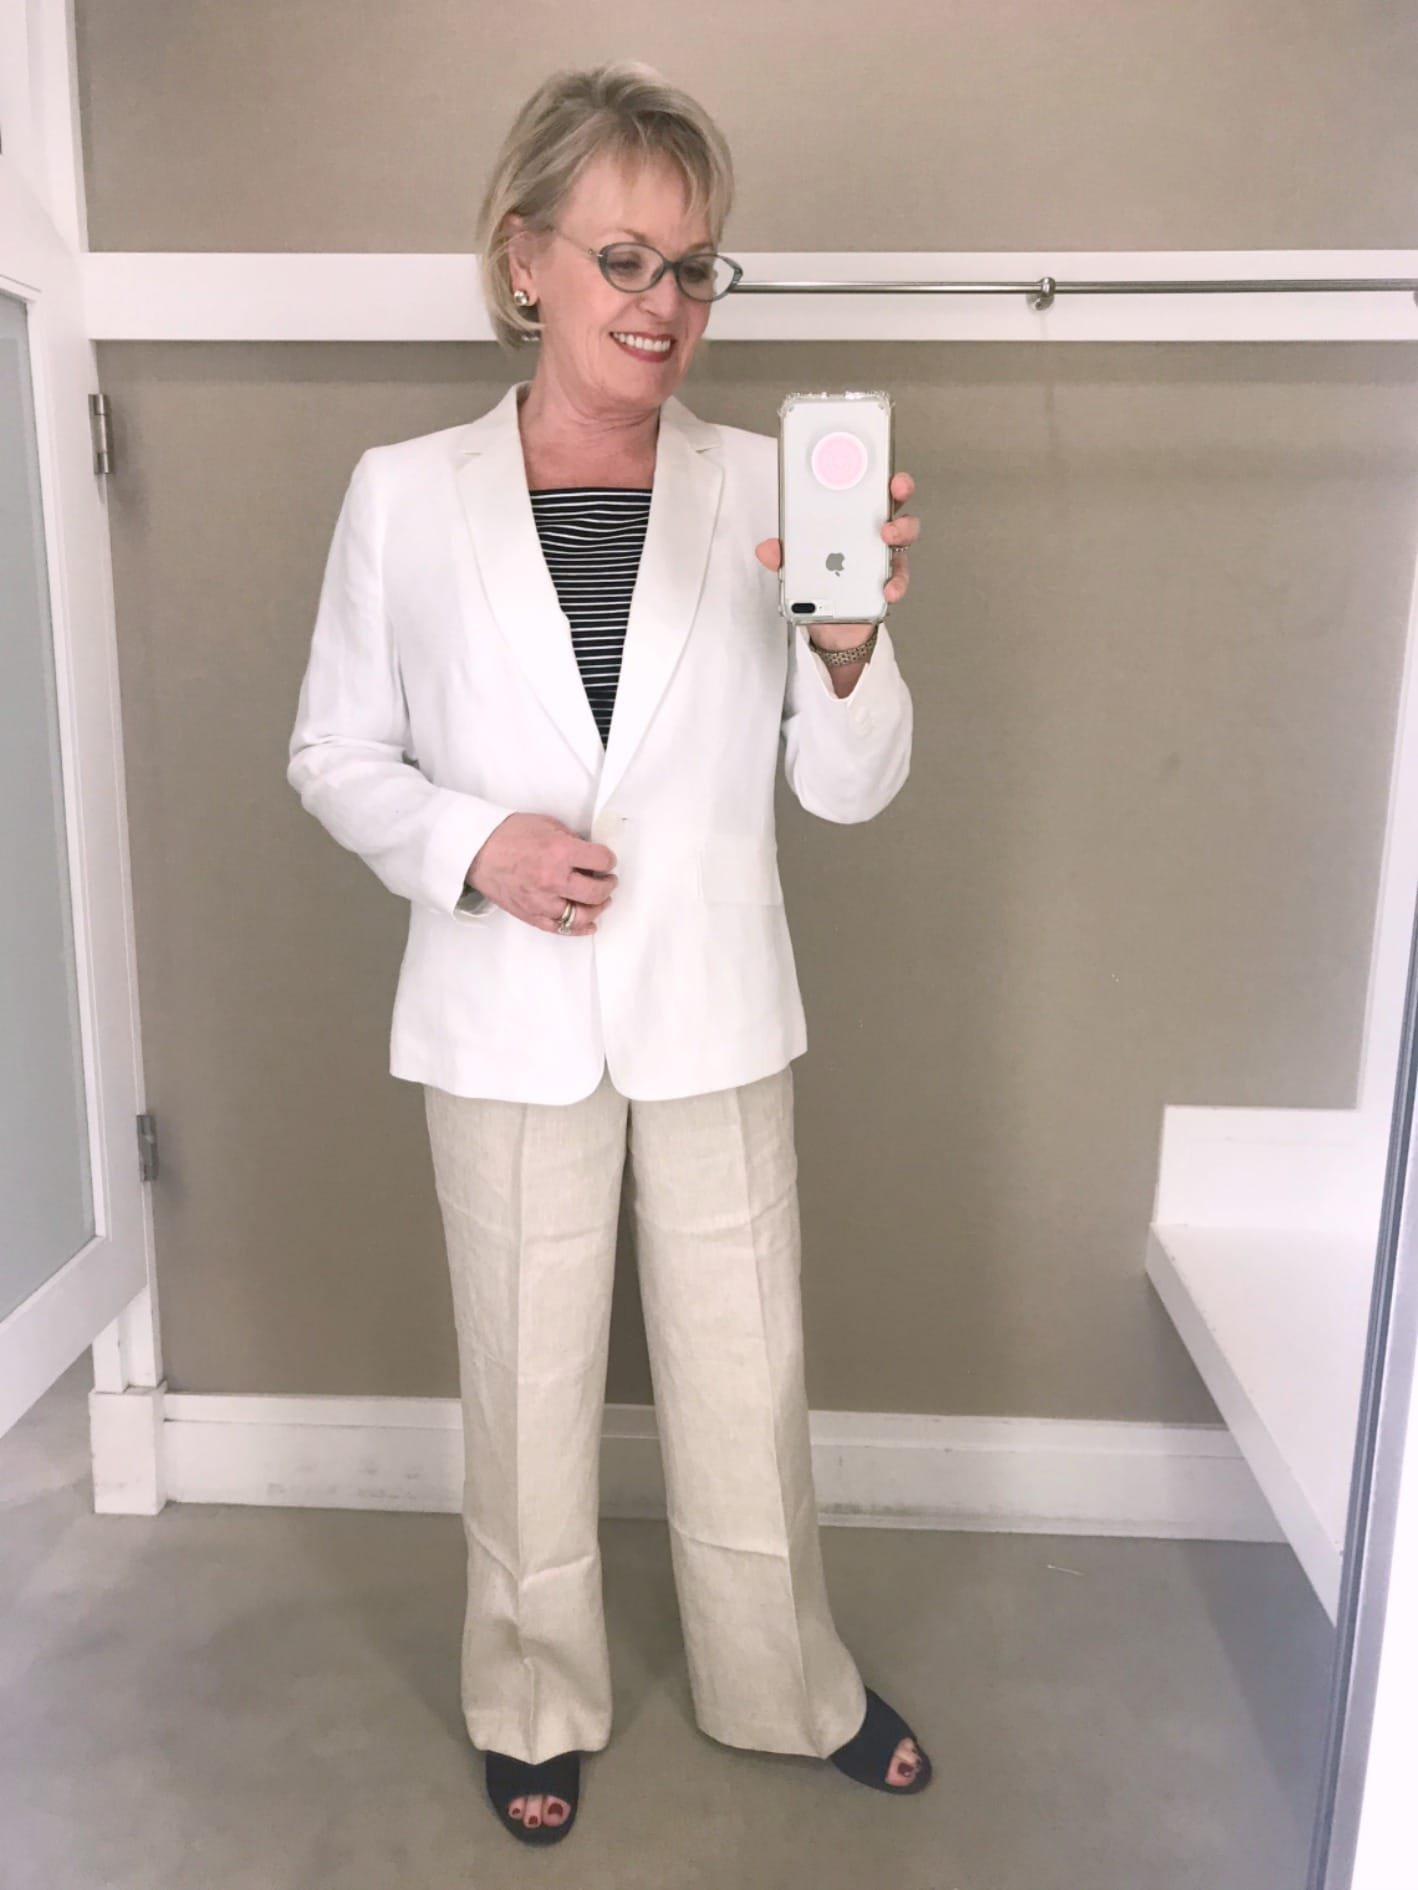 linen suiting from Talbots worn by Jennifer Connolly of A Well Styled Life